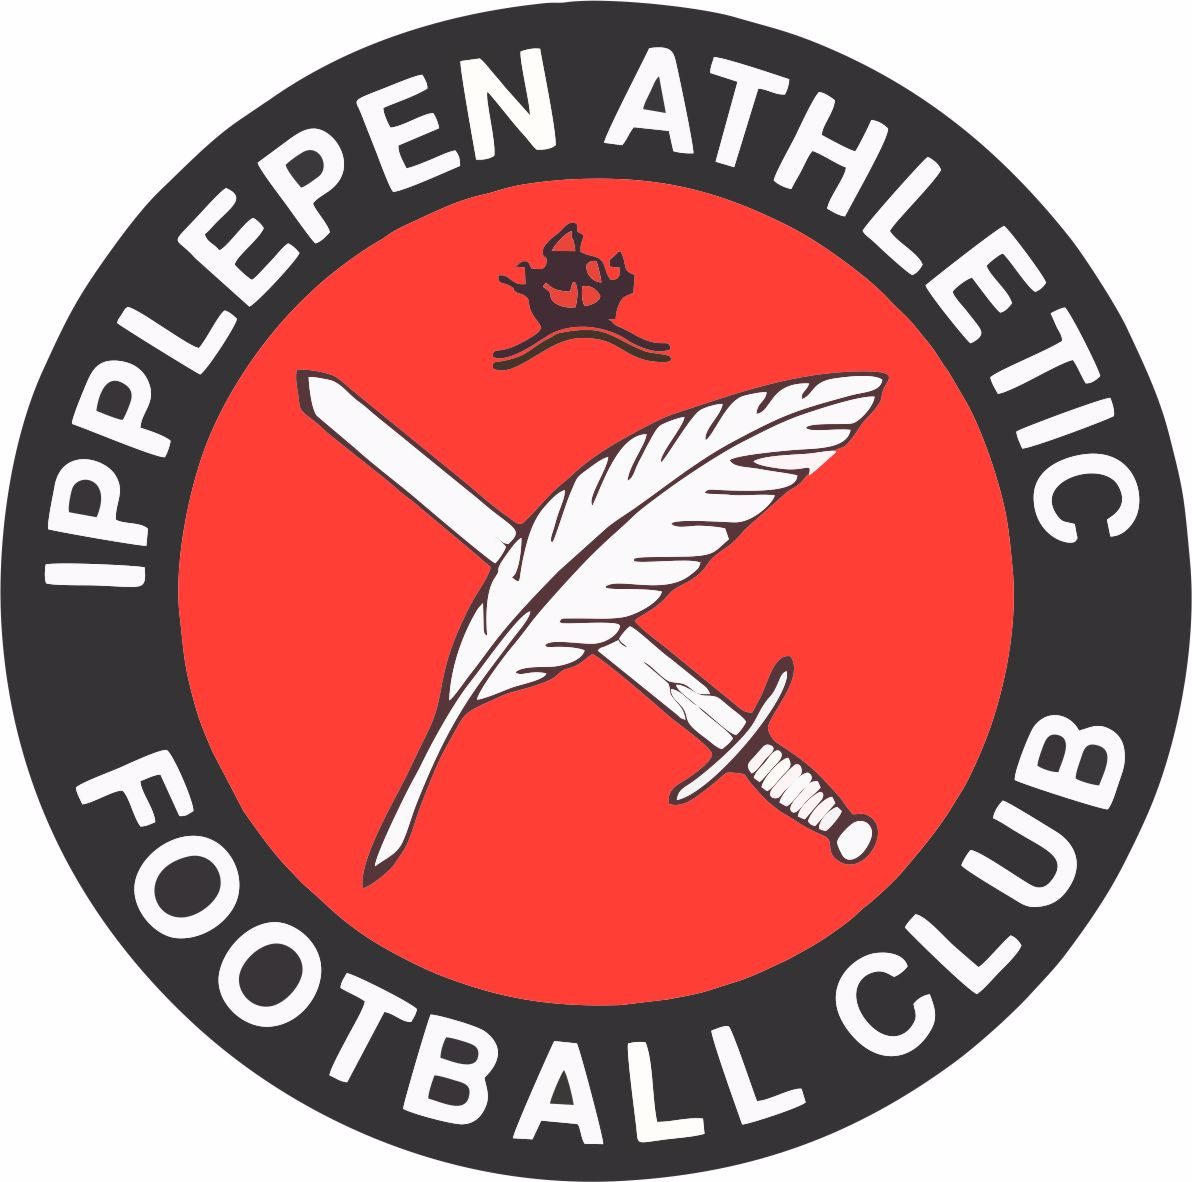 Club Image for IPPLEPEN ATHLETIC FC